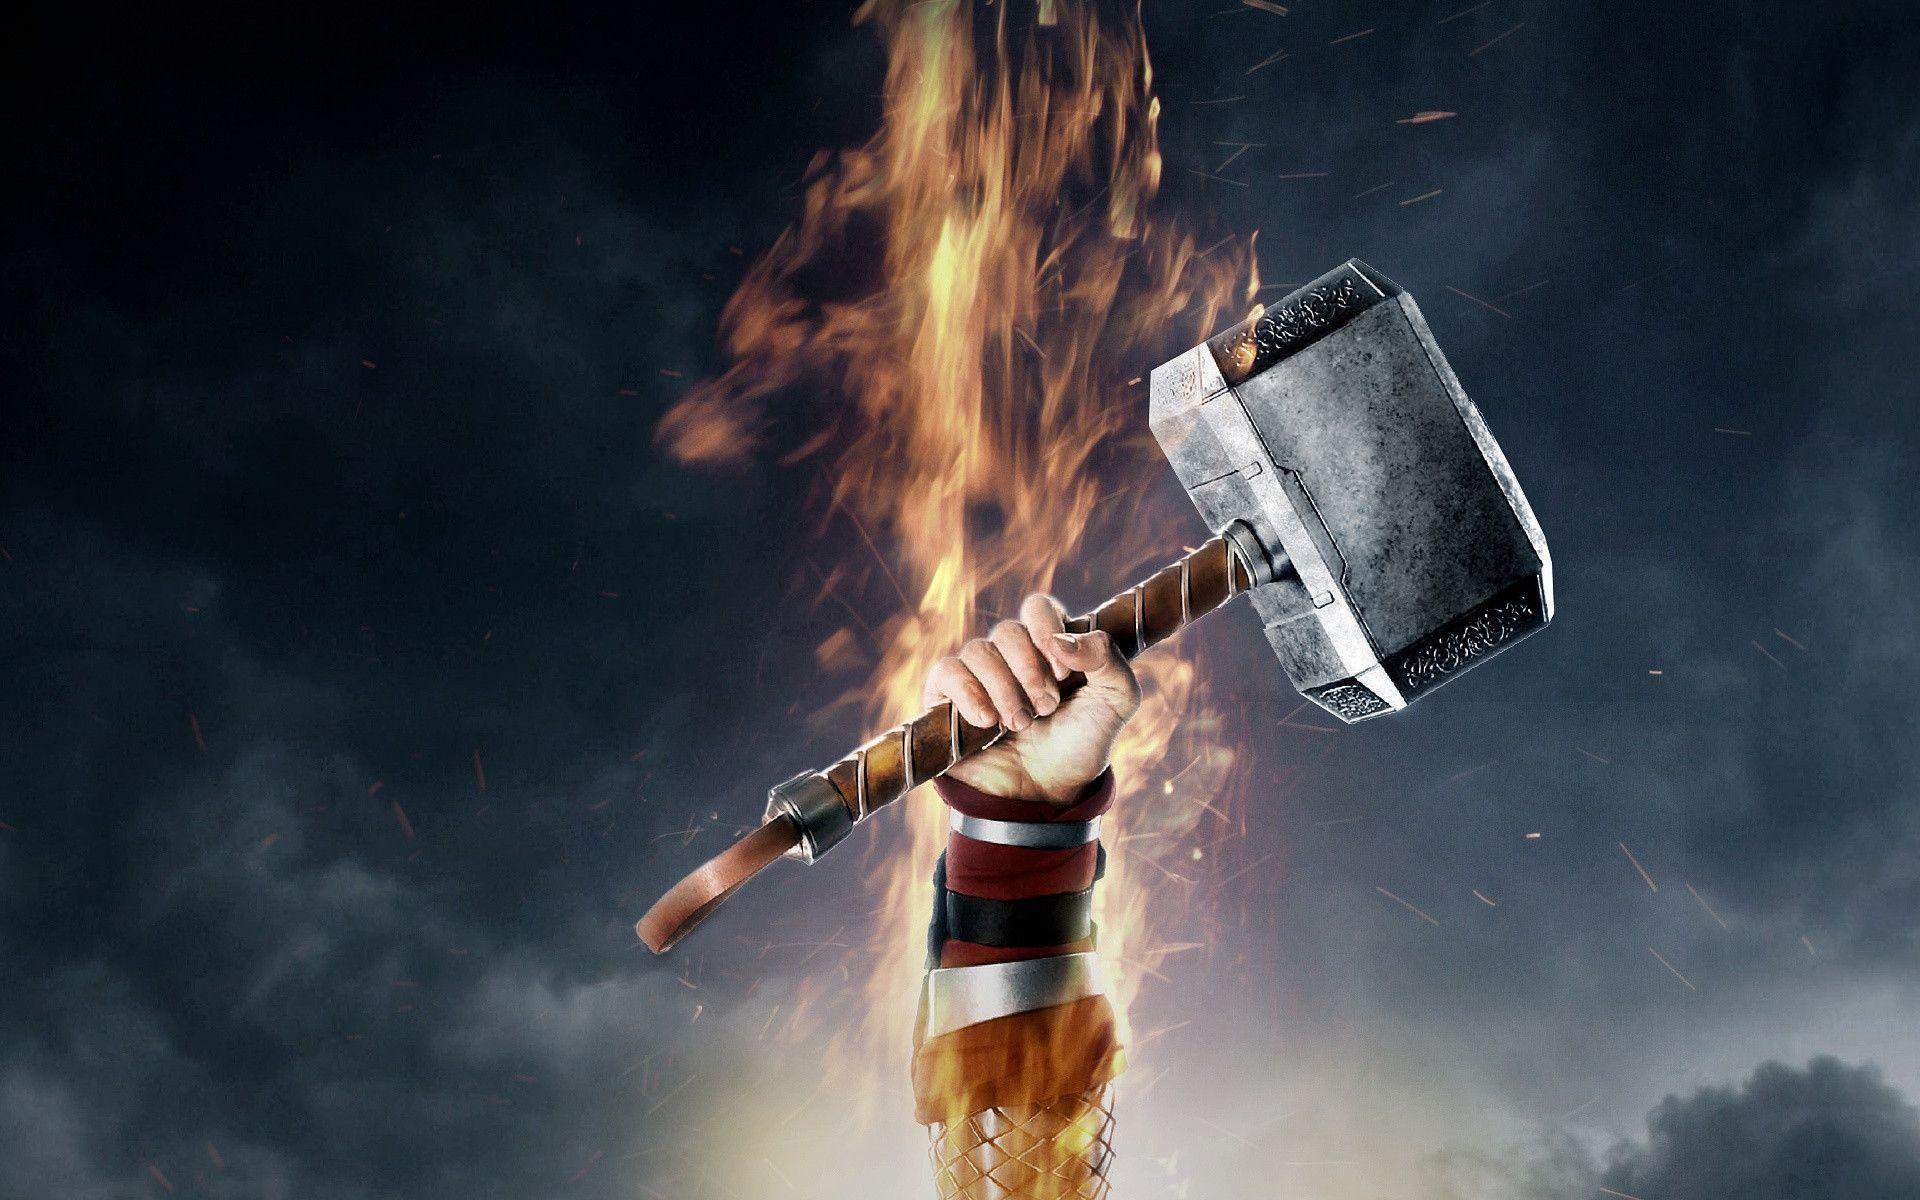 Wallpapers tagged with thor thor hd wallpapers page 1